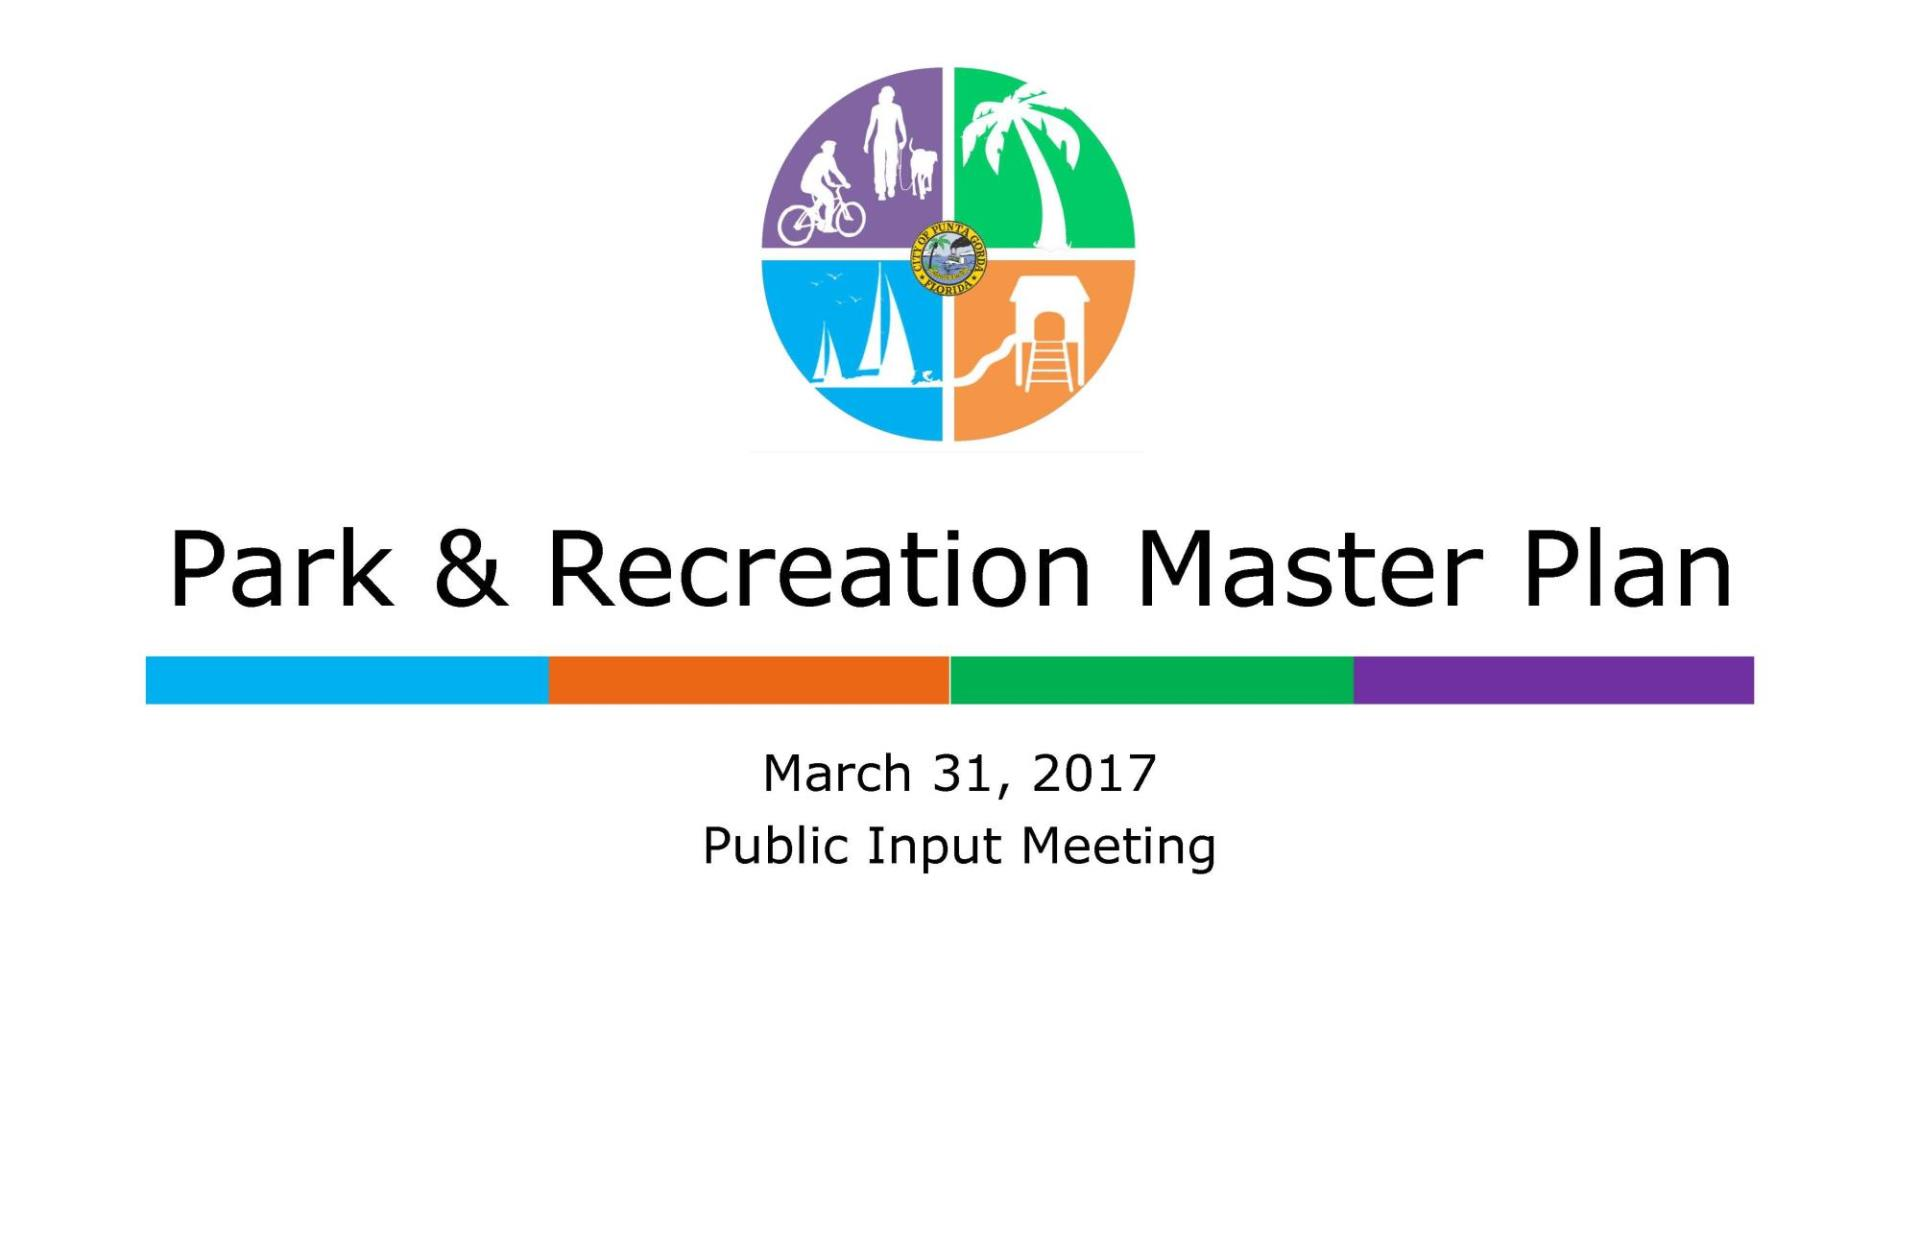 Park & Recreation Master Plan Presentation cover